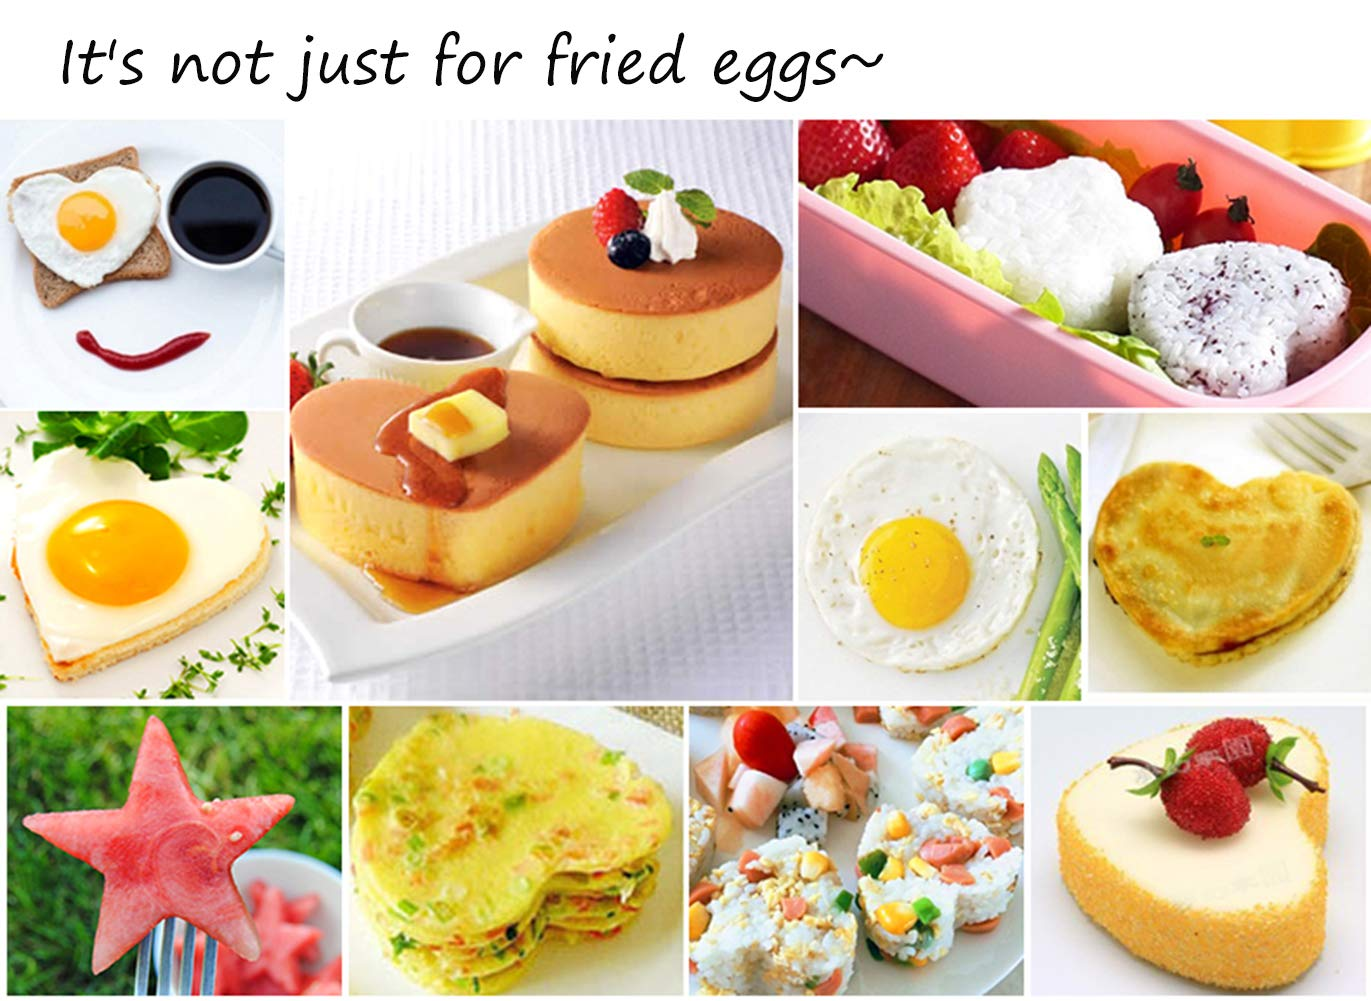 10Pcs Omelette Mold Fried Egg Mold Set in 10 Different Shapes Stainless Steel Fried Egg Ring with 1 Silicone Pastry Brush - Set of 11